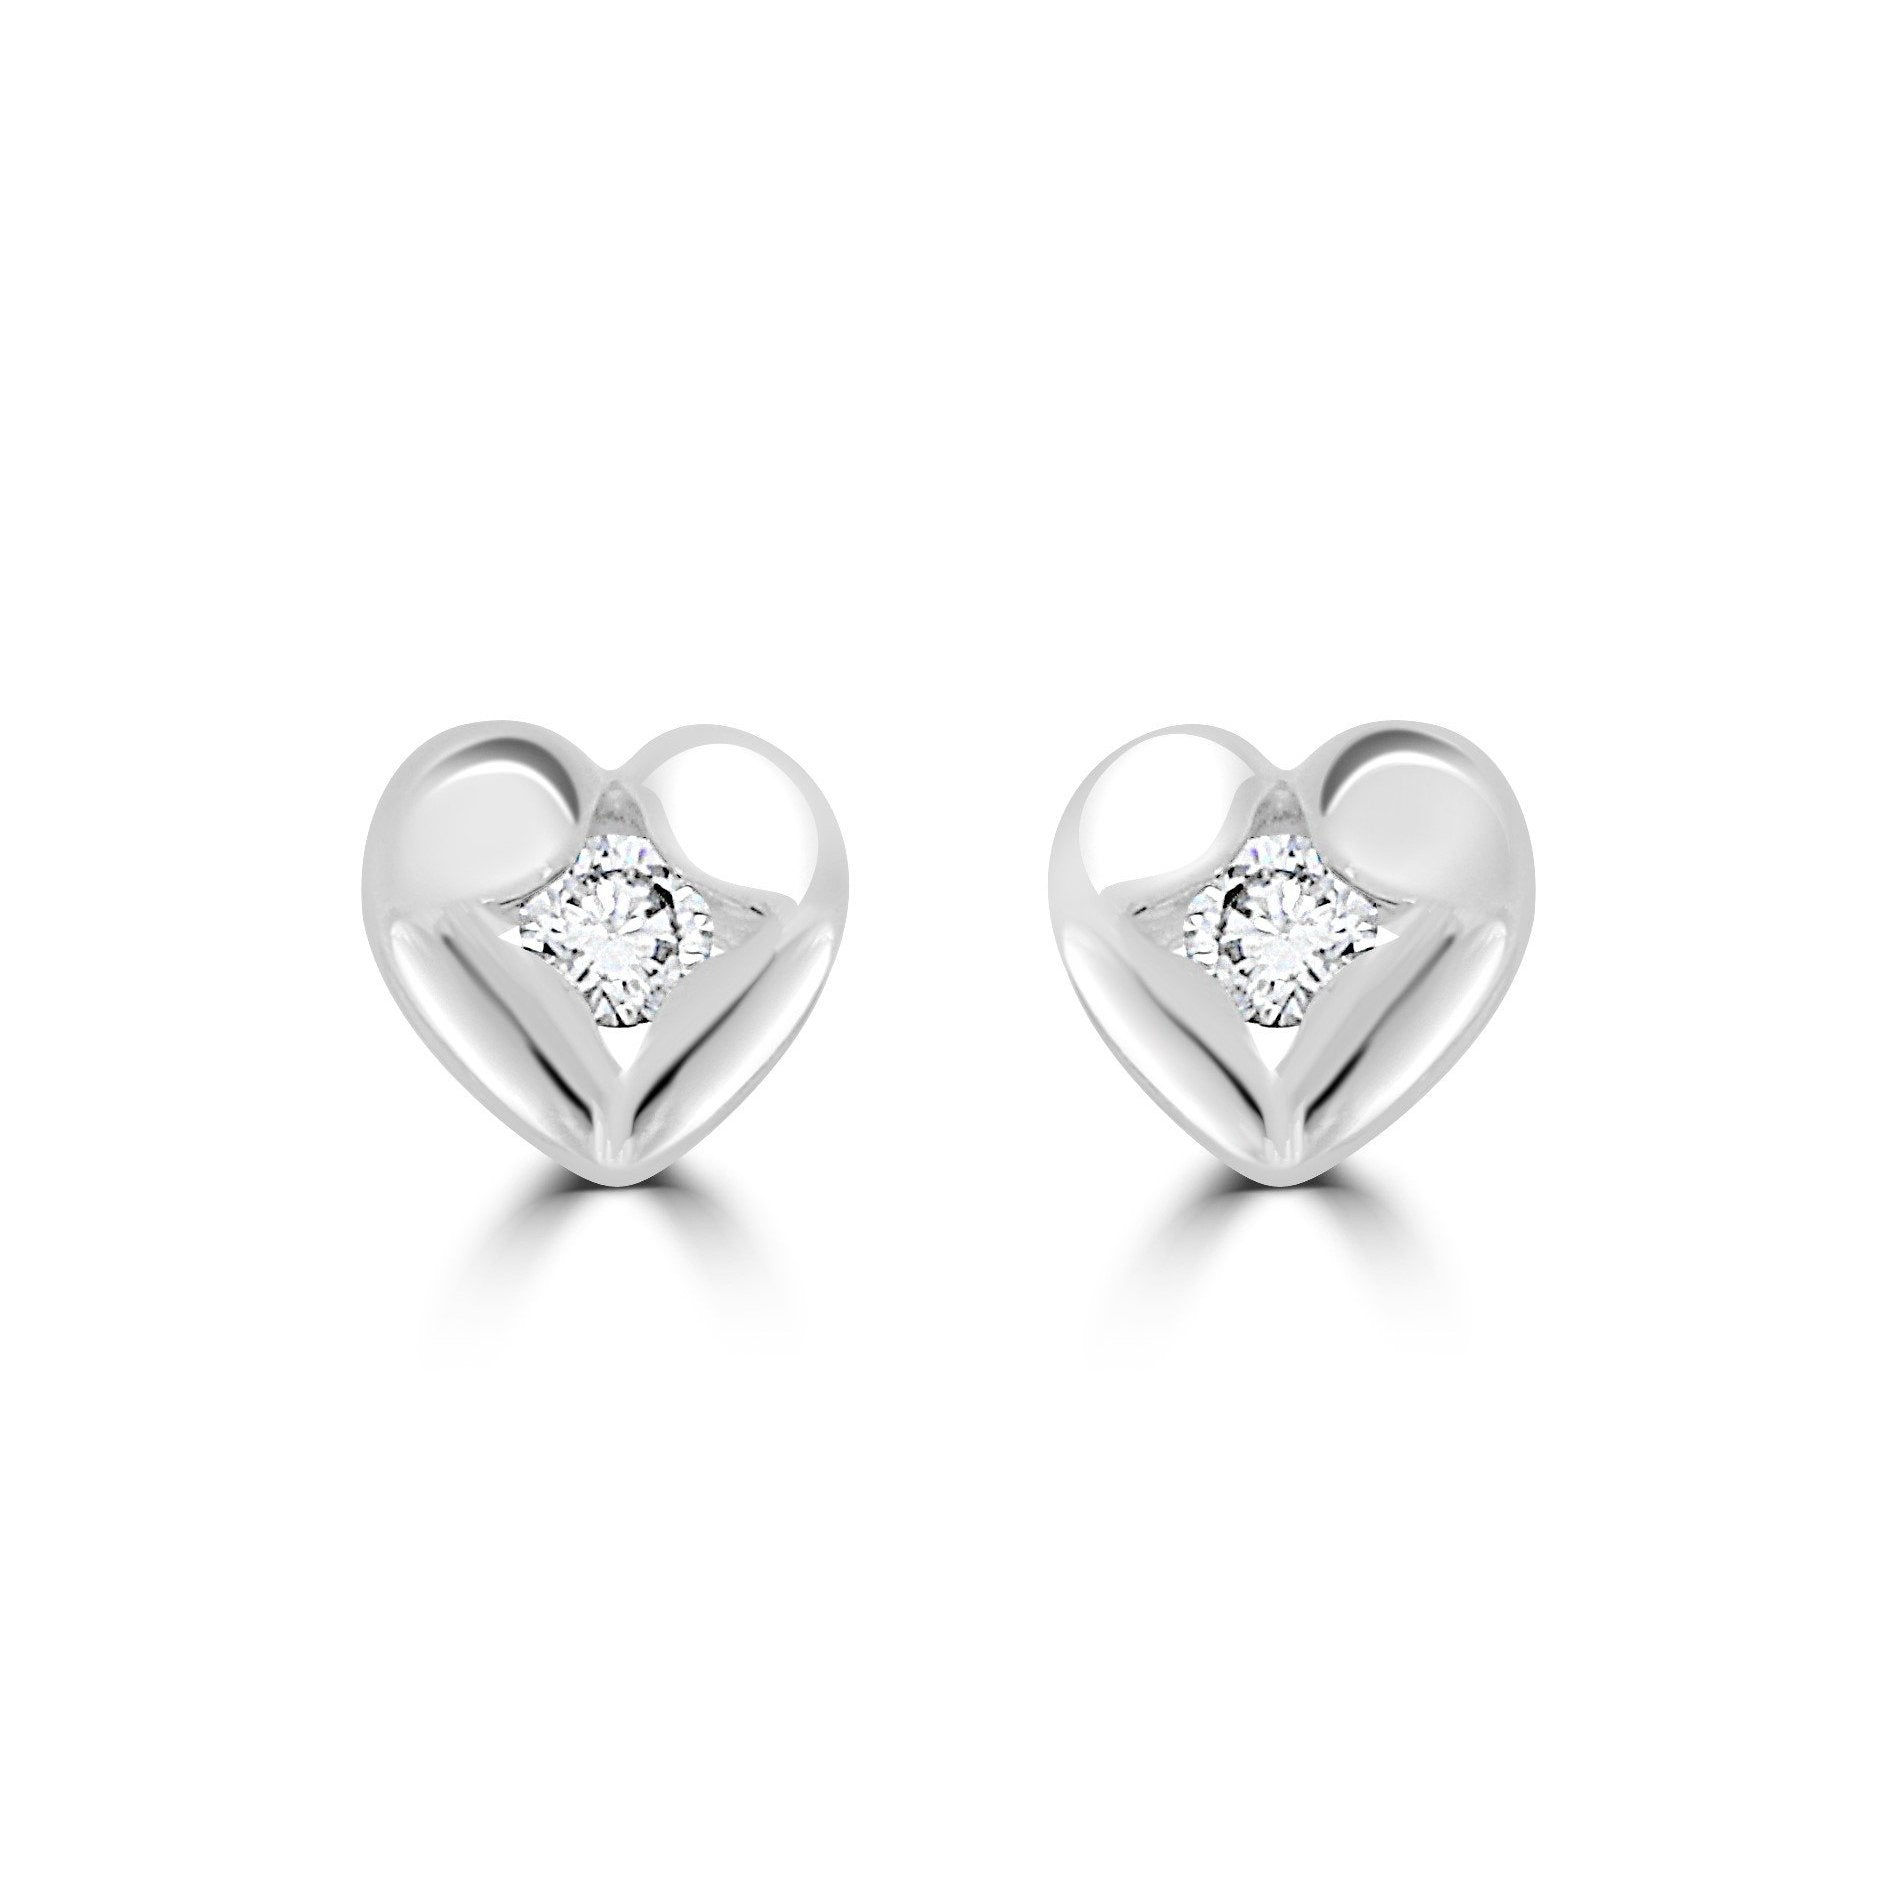 Sterling Silver And Cubic Zirconia (CZ) Heart Earrings Stud